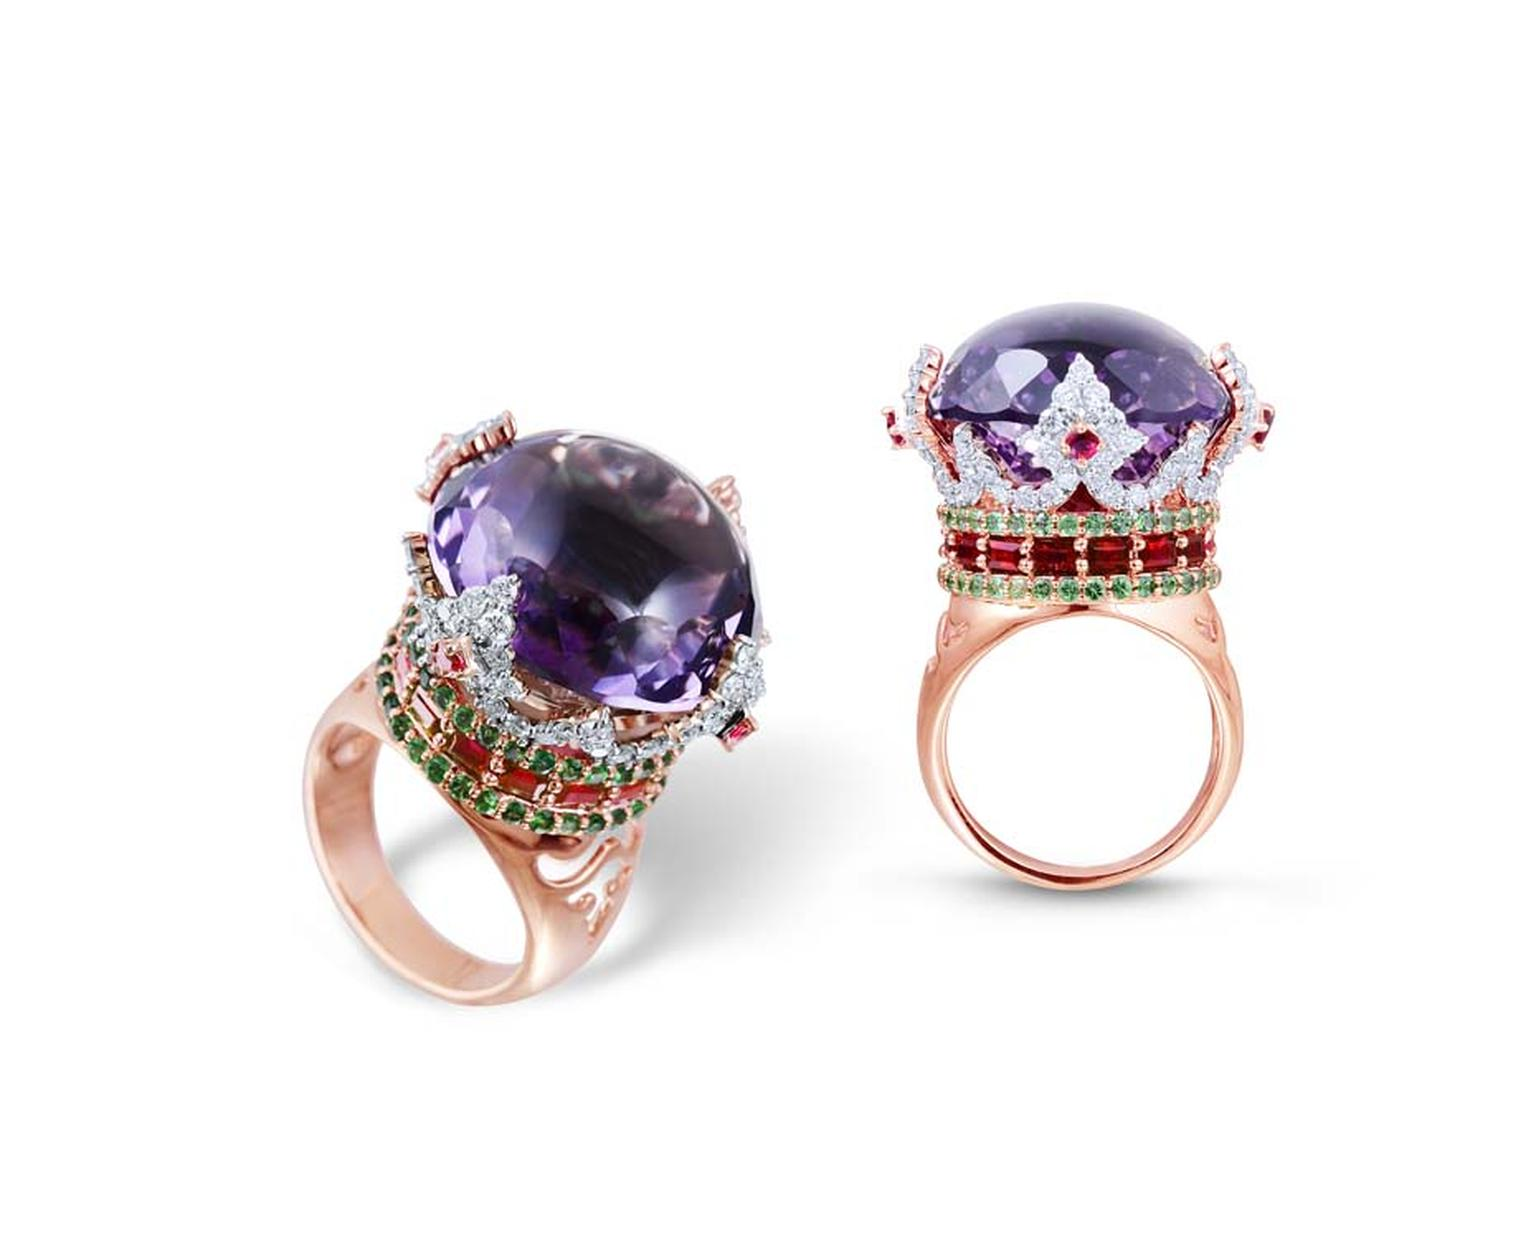 Farah Khan Crown rose gold ring with a central amethyst surrounded by diamonds, rubies and emeralds